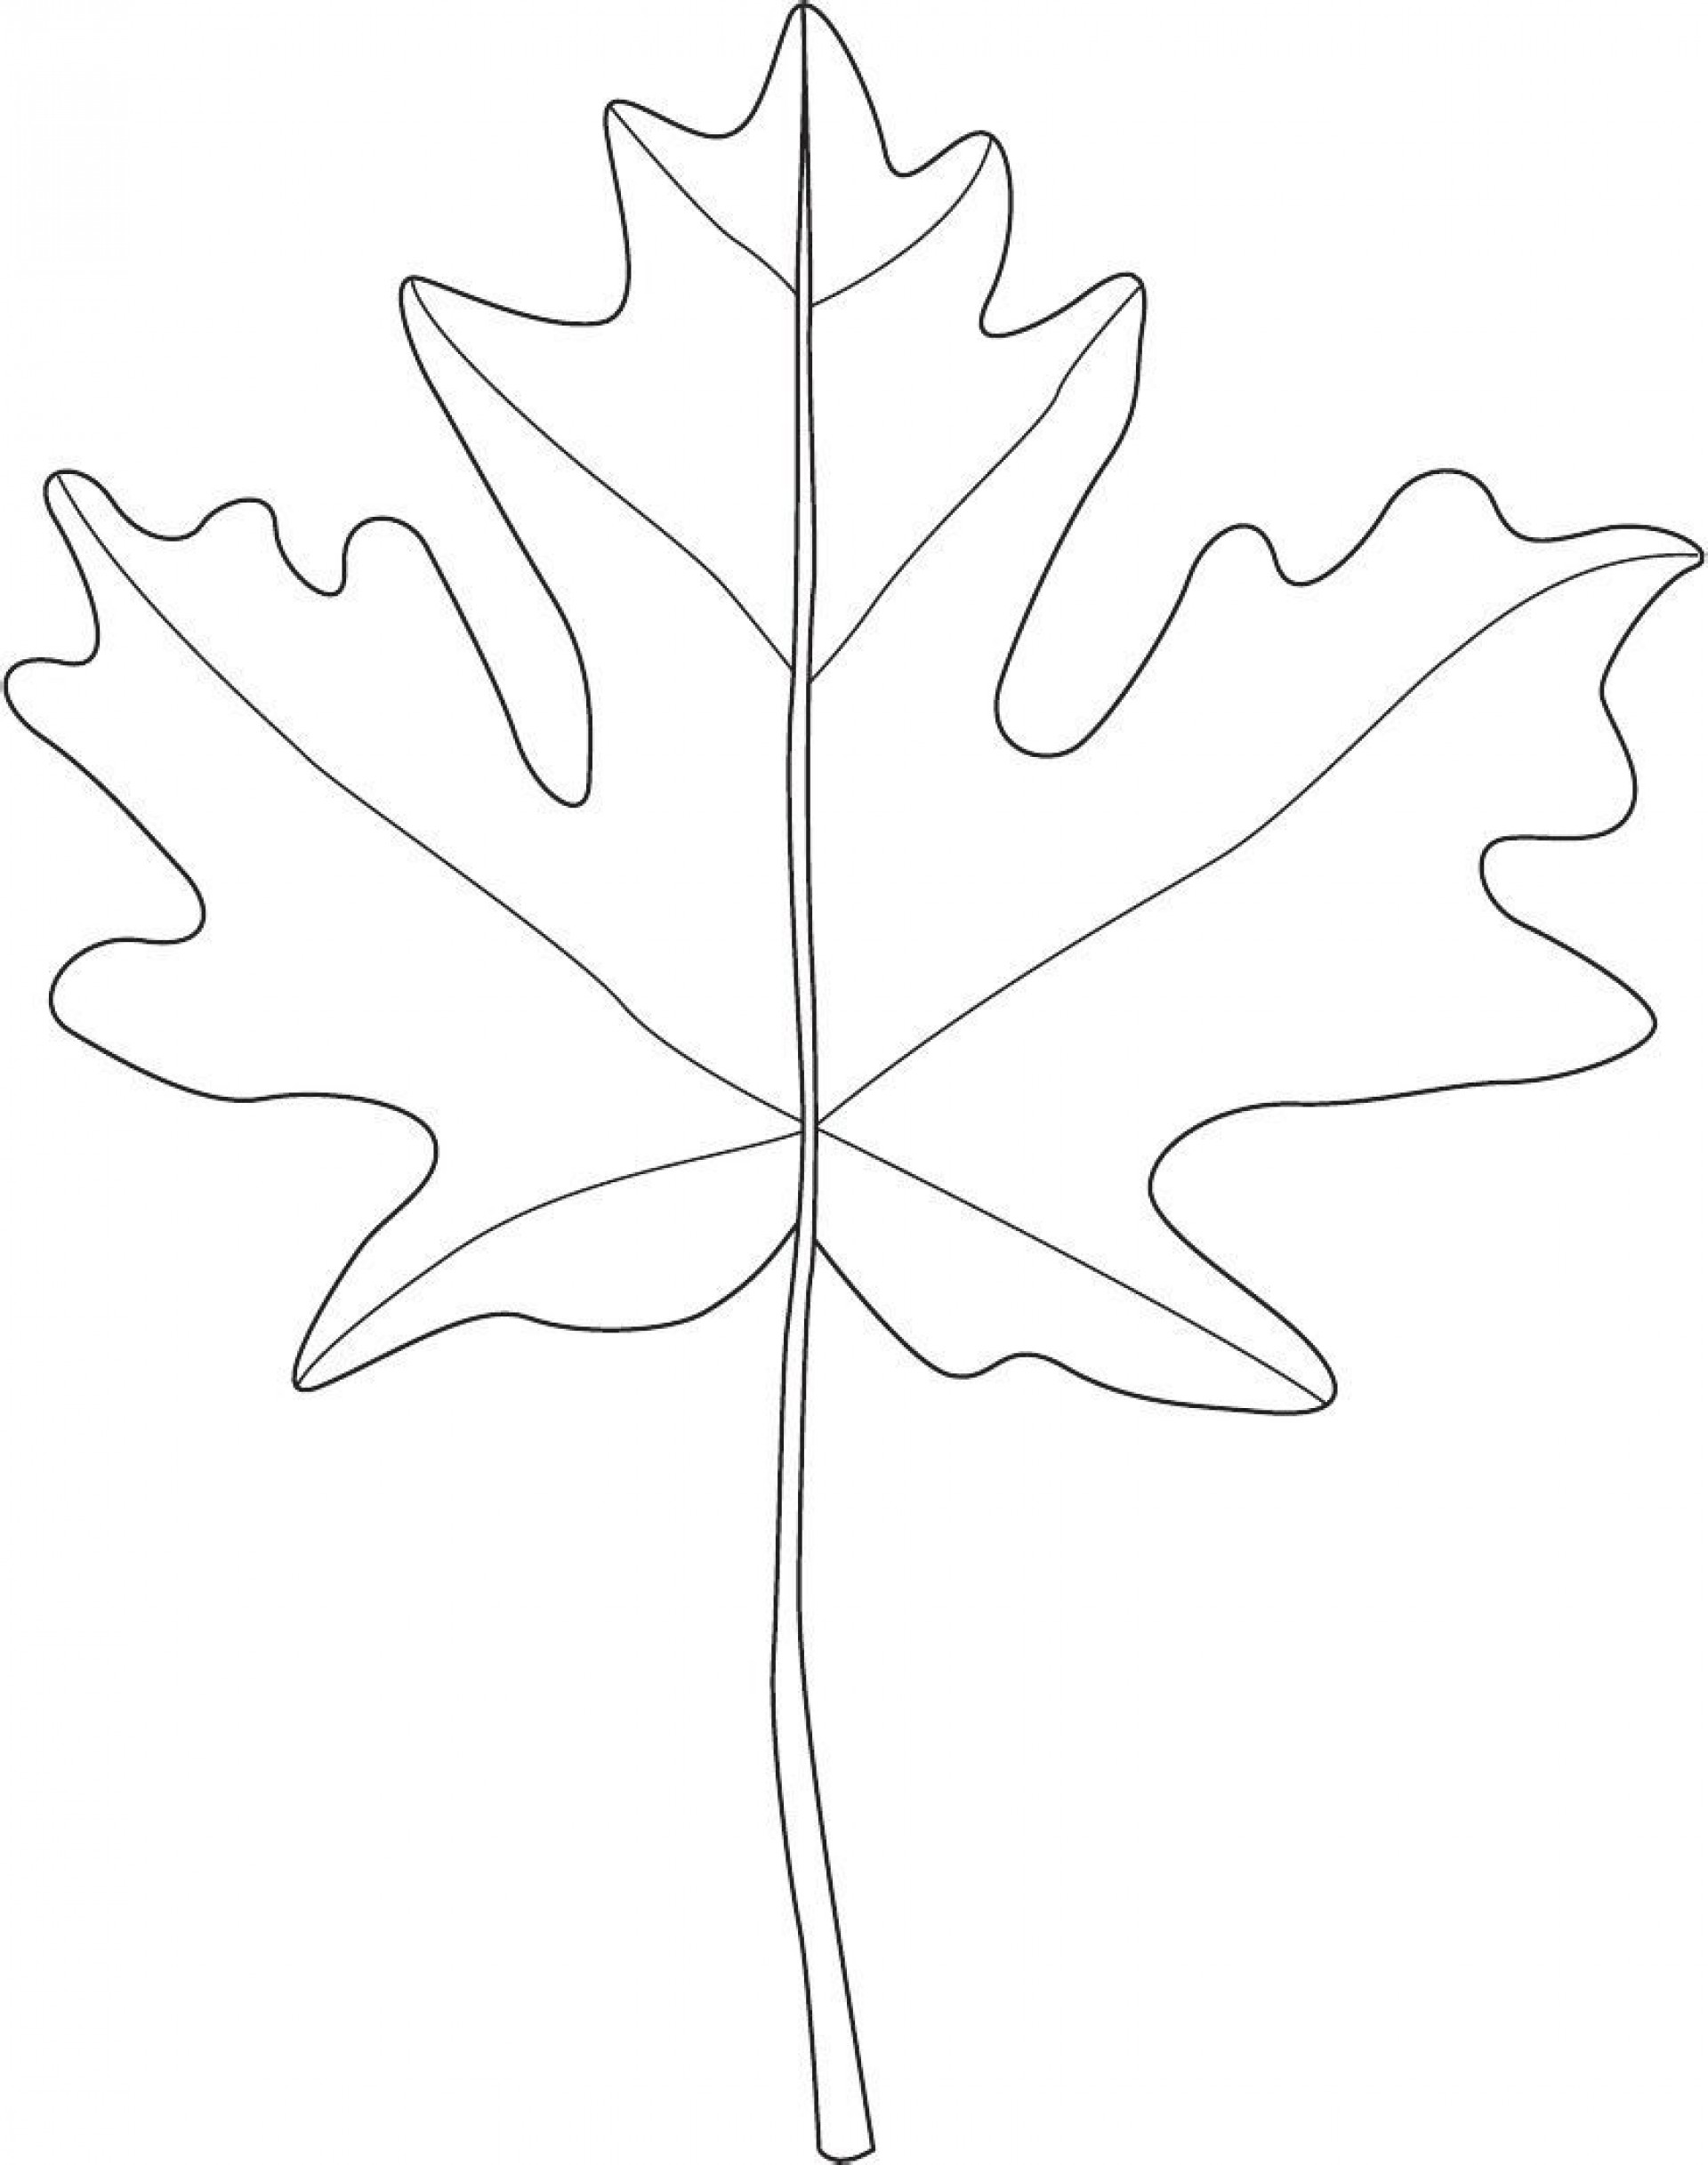 001 Marvelou Blank Leaf Template With Line Photo  Lines Printable1920